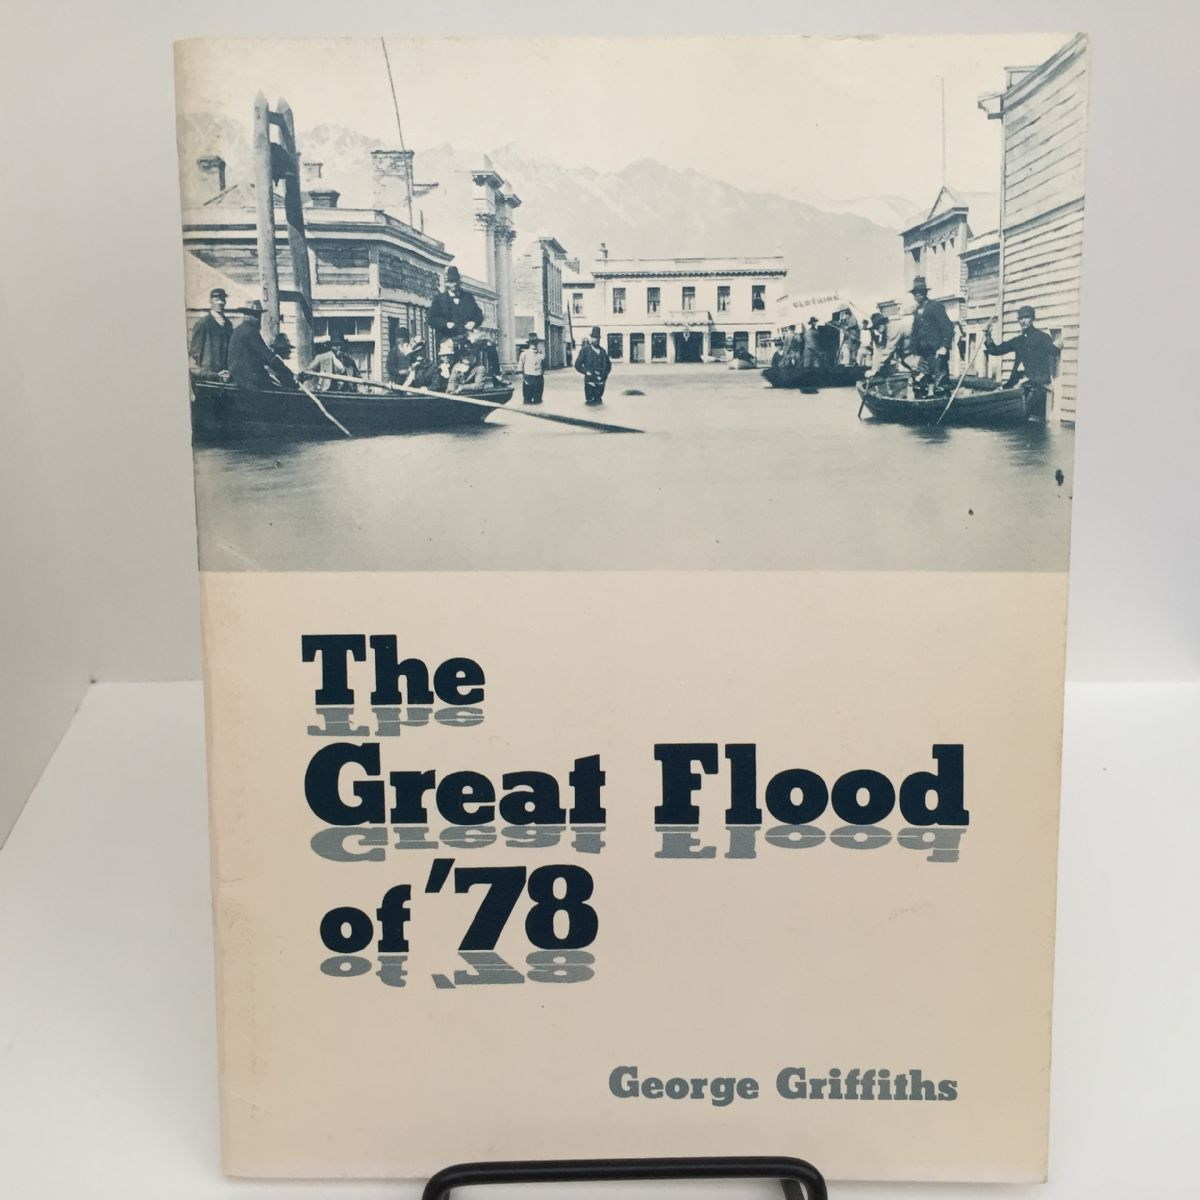 The Great Flood of 78